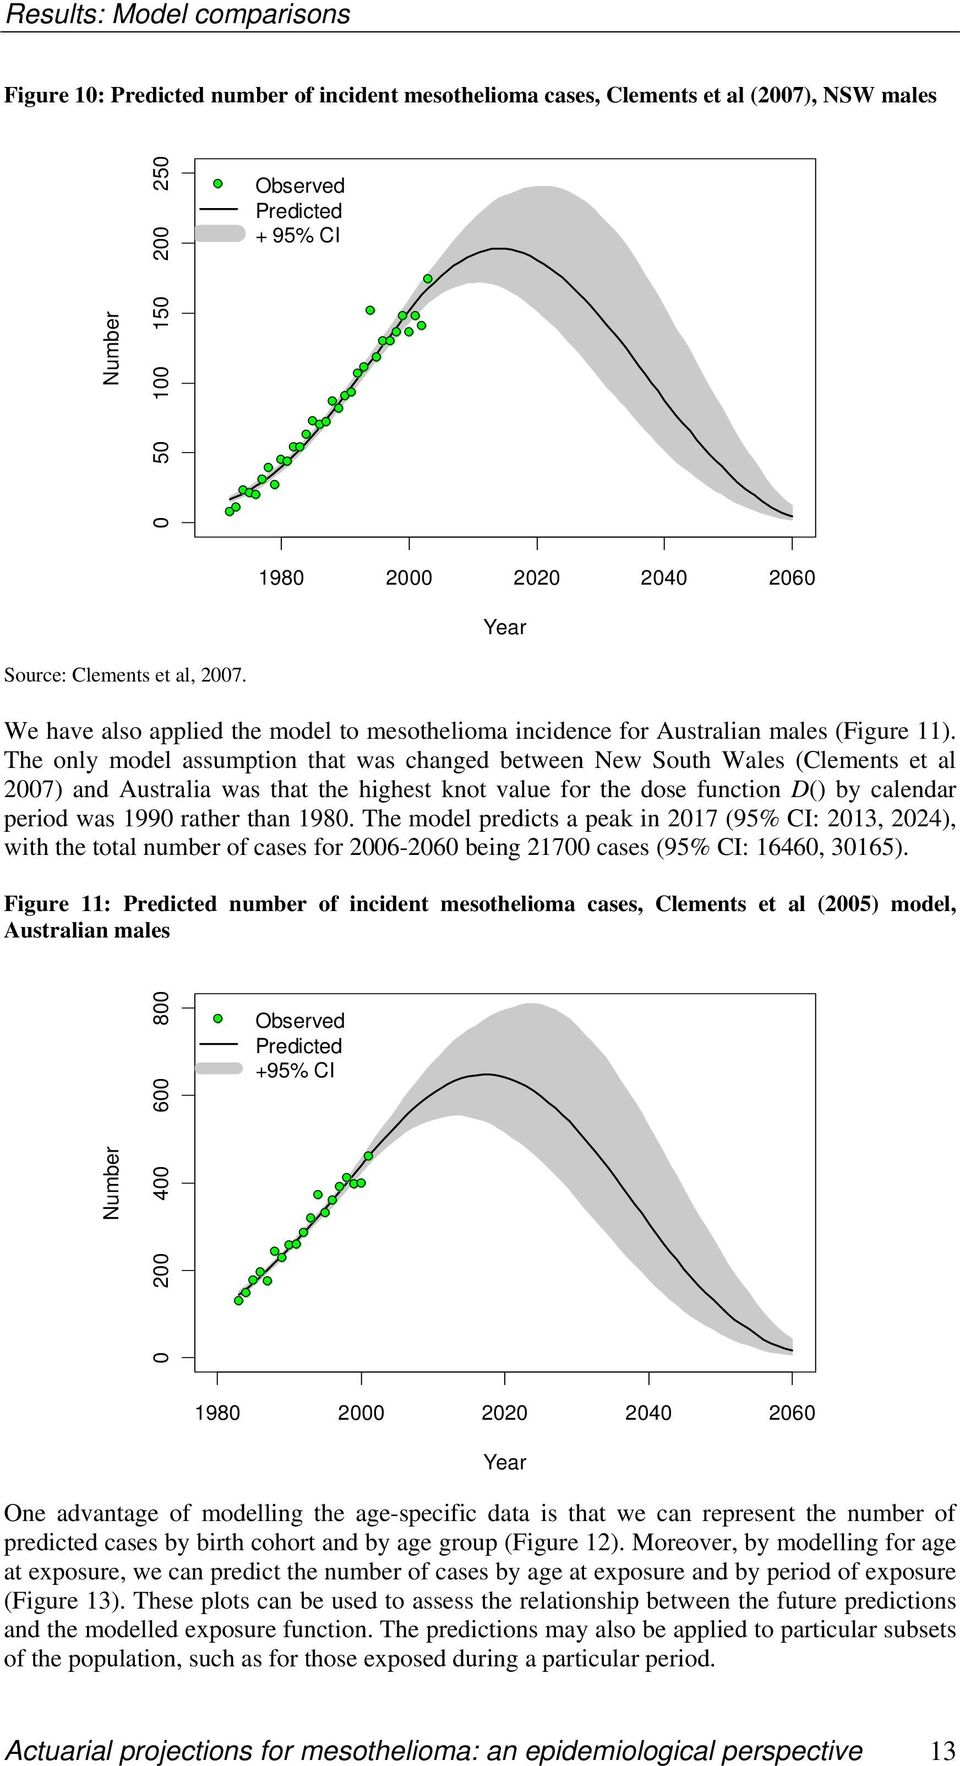 The only model assumption that was changed between New South Wales (Clements et al 2007) and Australia was that the highest knot value for the dose function D() by calendar period was 1990 rather